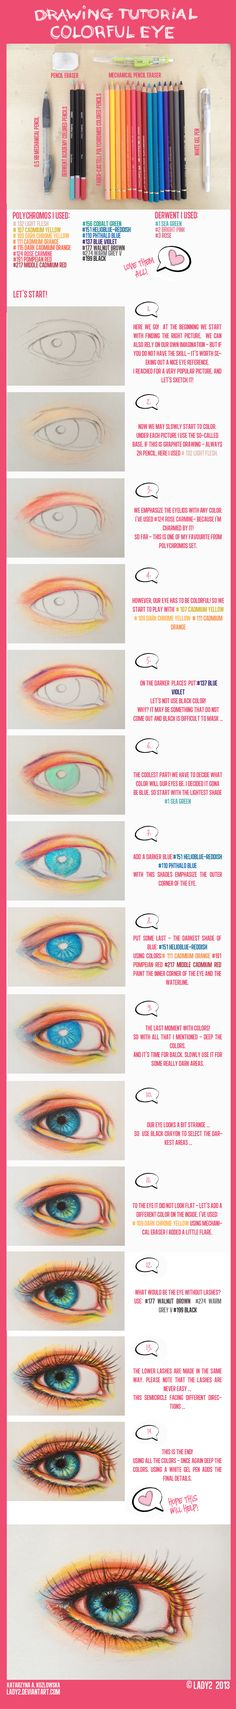 colored_pencil_eye_tutorial. by Lady2.deviantart.com on @deviantART promo by Art Ed Central